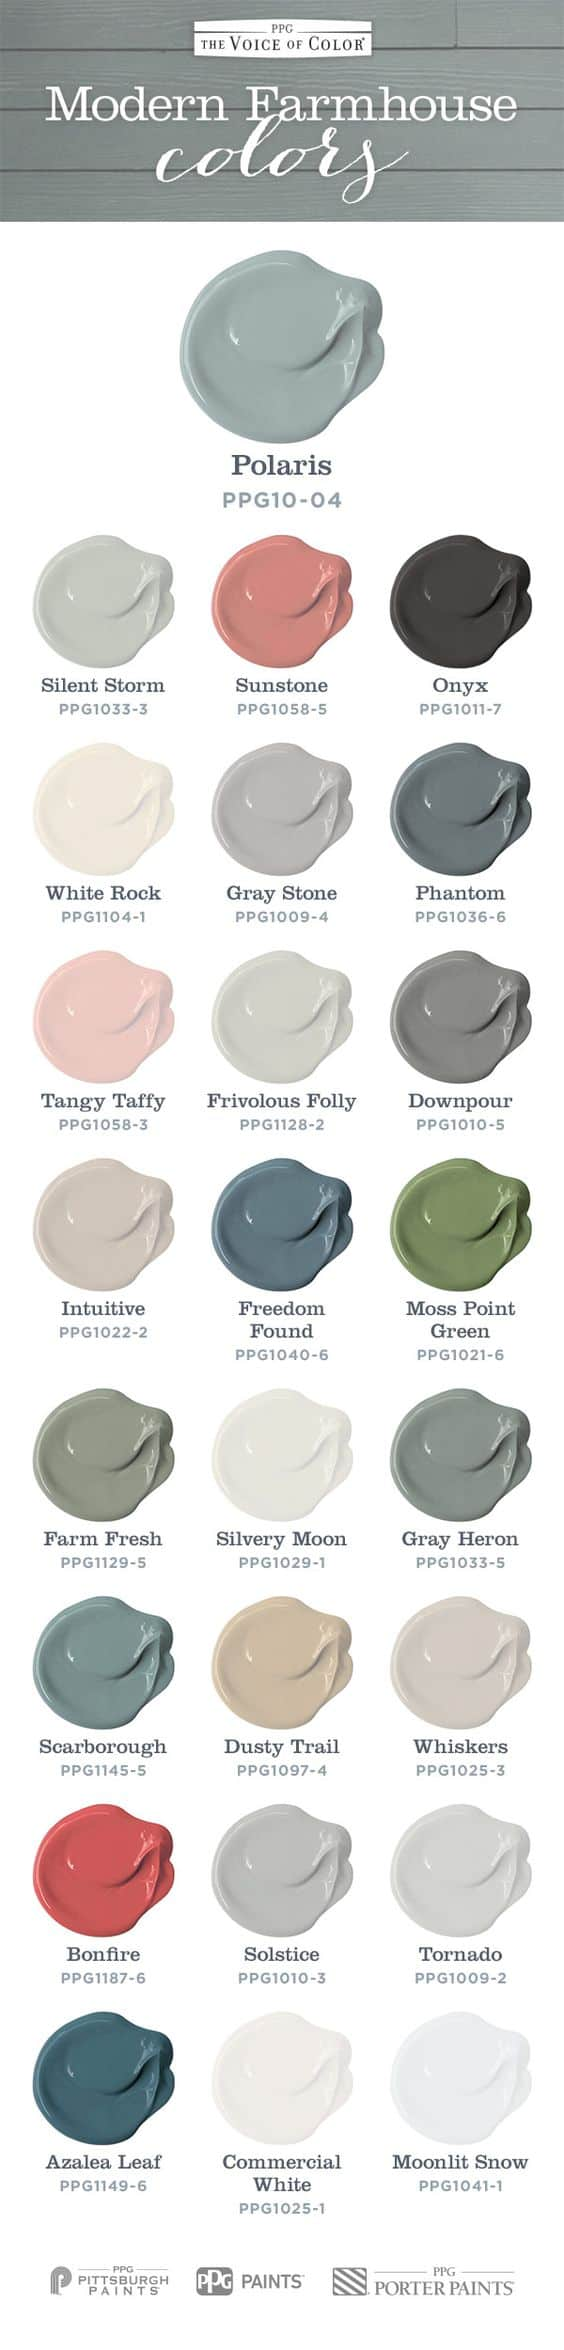 Modern Farmhouse Colors from Voice of Color, a review featured by top US life and style blog, Fynes Designs: Modern Farm House Colors inspired by Chip and Joanna Gaines Fixer Upper. Fill your home with this color palette to achieve a soft welcoming farmhouse look.